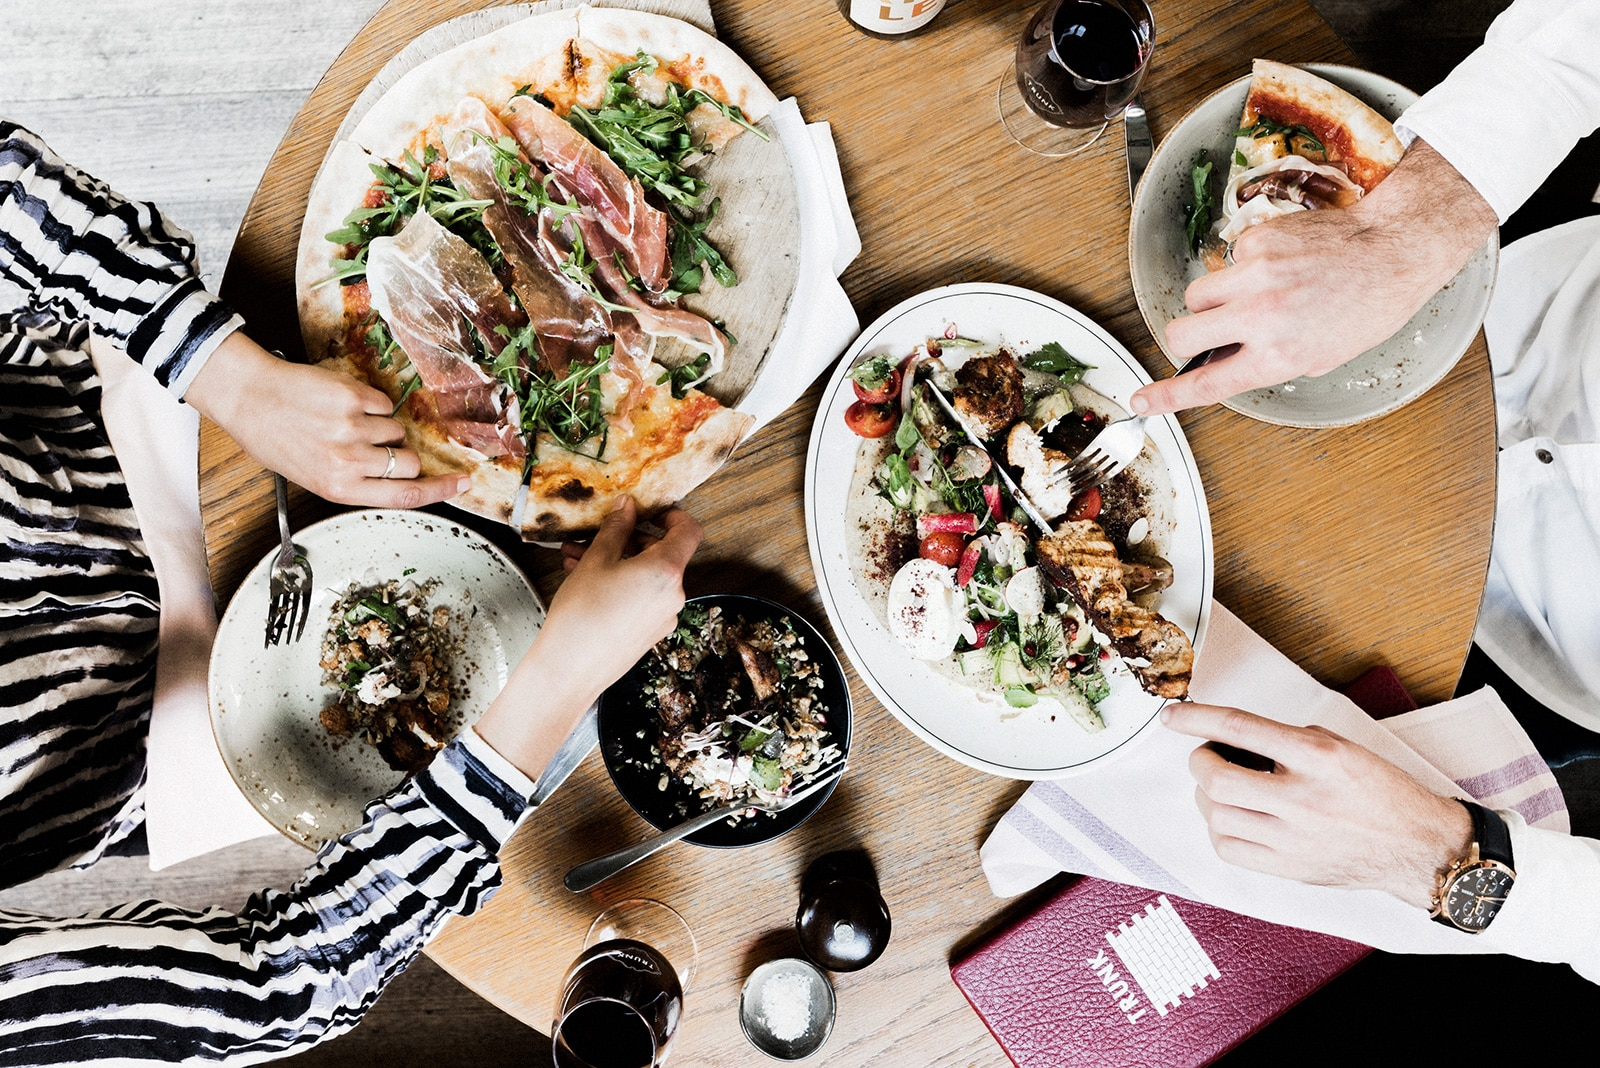 places to eat the best food in australia